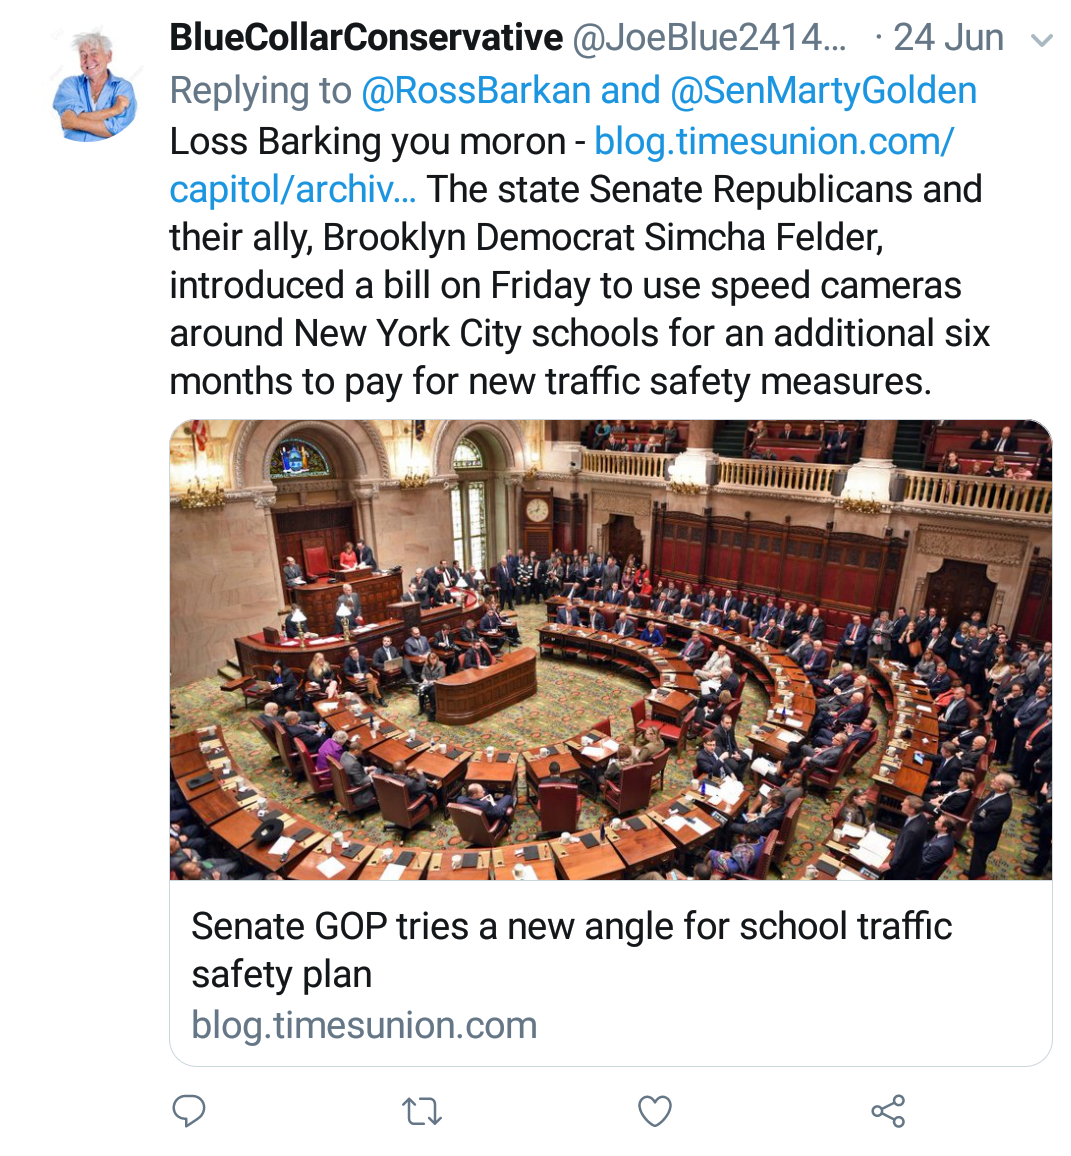 "Blue Collar Conservative Tweeted: ""Loss Barking you moron"" replying to @RossBarkan and @SenMartyGolden linking to a timesunion.com article about Senate GOP plans for school traffic safety."